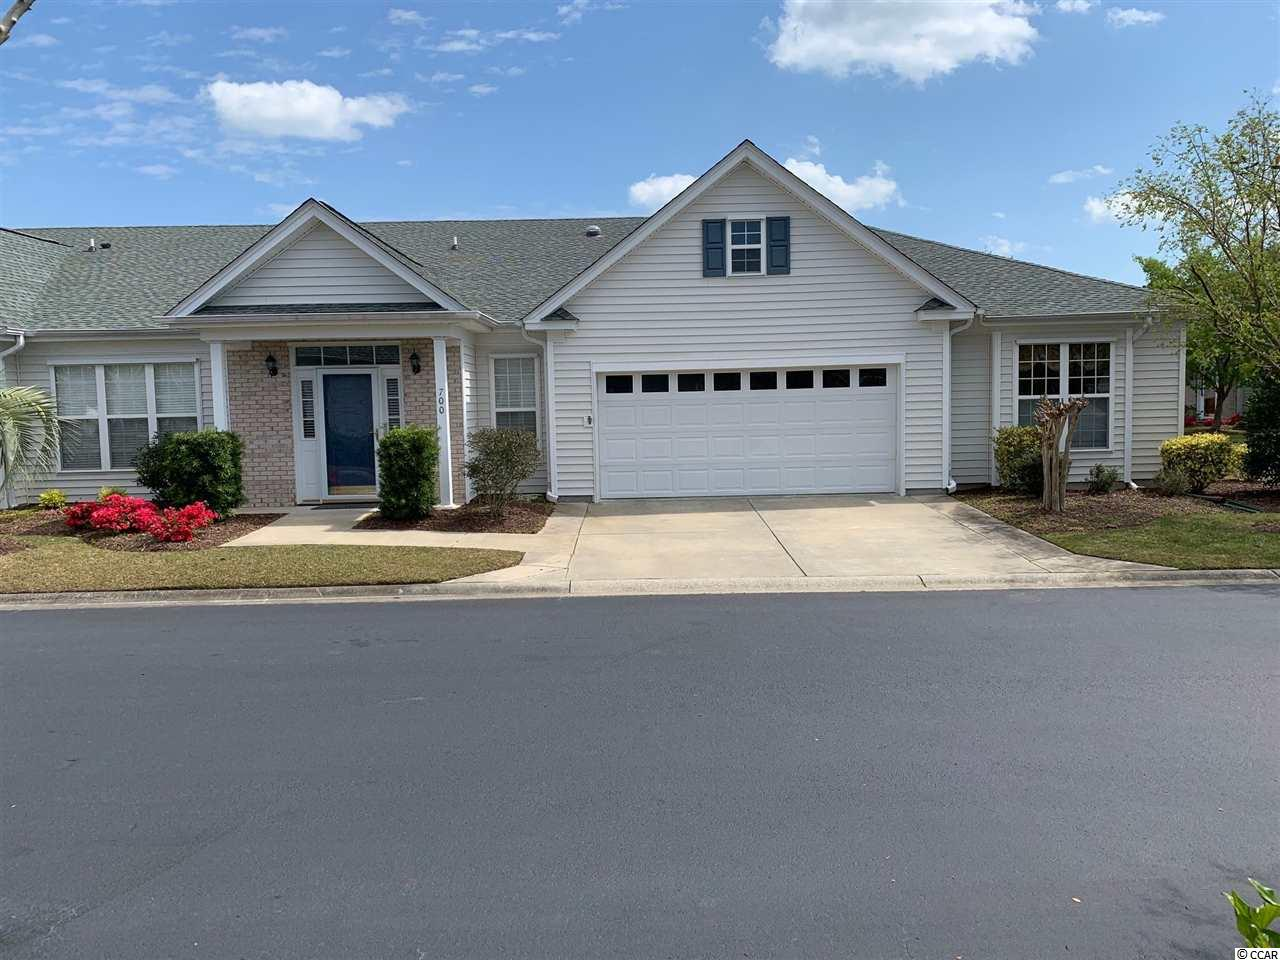 Where can you have a condo living with a 2 car garage?  One of a kind end unit villa in the community.  MUST SEE!  Freshly painted entire home including the garage.  This 2 bedroom, 2 bath with den is located in a prime location only 4 miles to the Inlet Marshwalk, and 7 miles to Huntington State Park, while within walking /golf cart distance to CVS Pharmacy, Publix Super Market @ Prince Creek and several other shops including the famous Eggs Up Grill.  The remodeled kitchen includes soft close cabinets, lazy susan, 4 pull out drawers, brand new Bosch dishwasher, built in desk, and Cambria counters tops with a sky tube for extra lighting.  The den has custom made built in book shelves.  Comfort height toilets in both baths.  Oversized marble shower with a full length bench seat and rain forest glass shower door.  Large master bedroom with tray ceiling, sitting area, and large walk in closet.  Laundry room with utility tub and entire home Kinetico water filtration system and water softener.  Ceiling fans in all rooms except dining area, Kitchen and 2nd bath.  Speaker system in great room and master bedroom.  2 car garage has extra heavy duty shelving on one wall.  Beautiful established neighborhood with lots of trees and walking areas.  Cross over the bridge to enter the pool over a pond full of turtles and ducks. Enjoy the crystal blue pool for a refreshing swim.